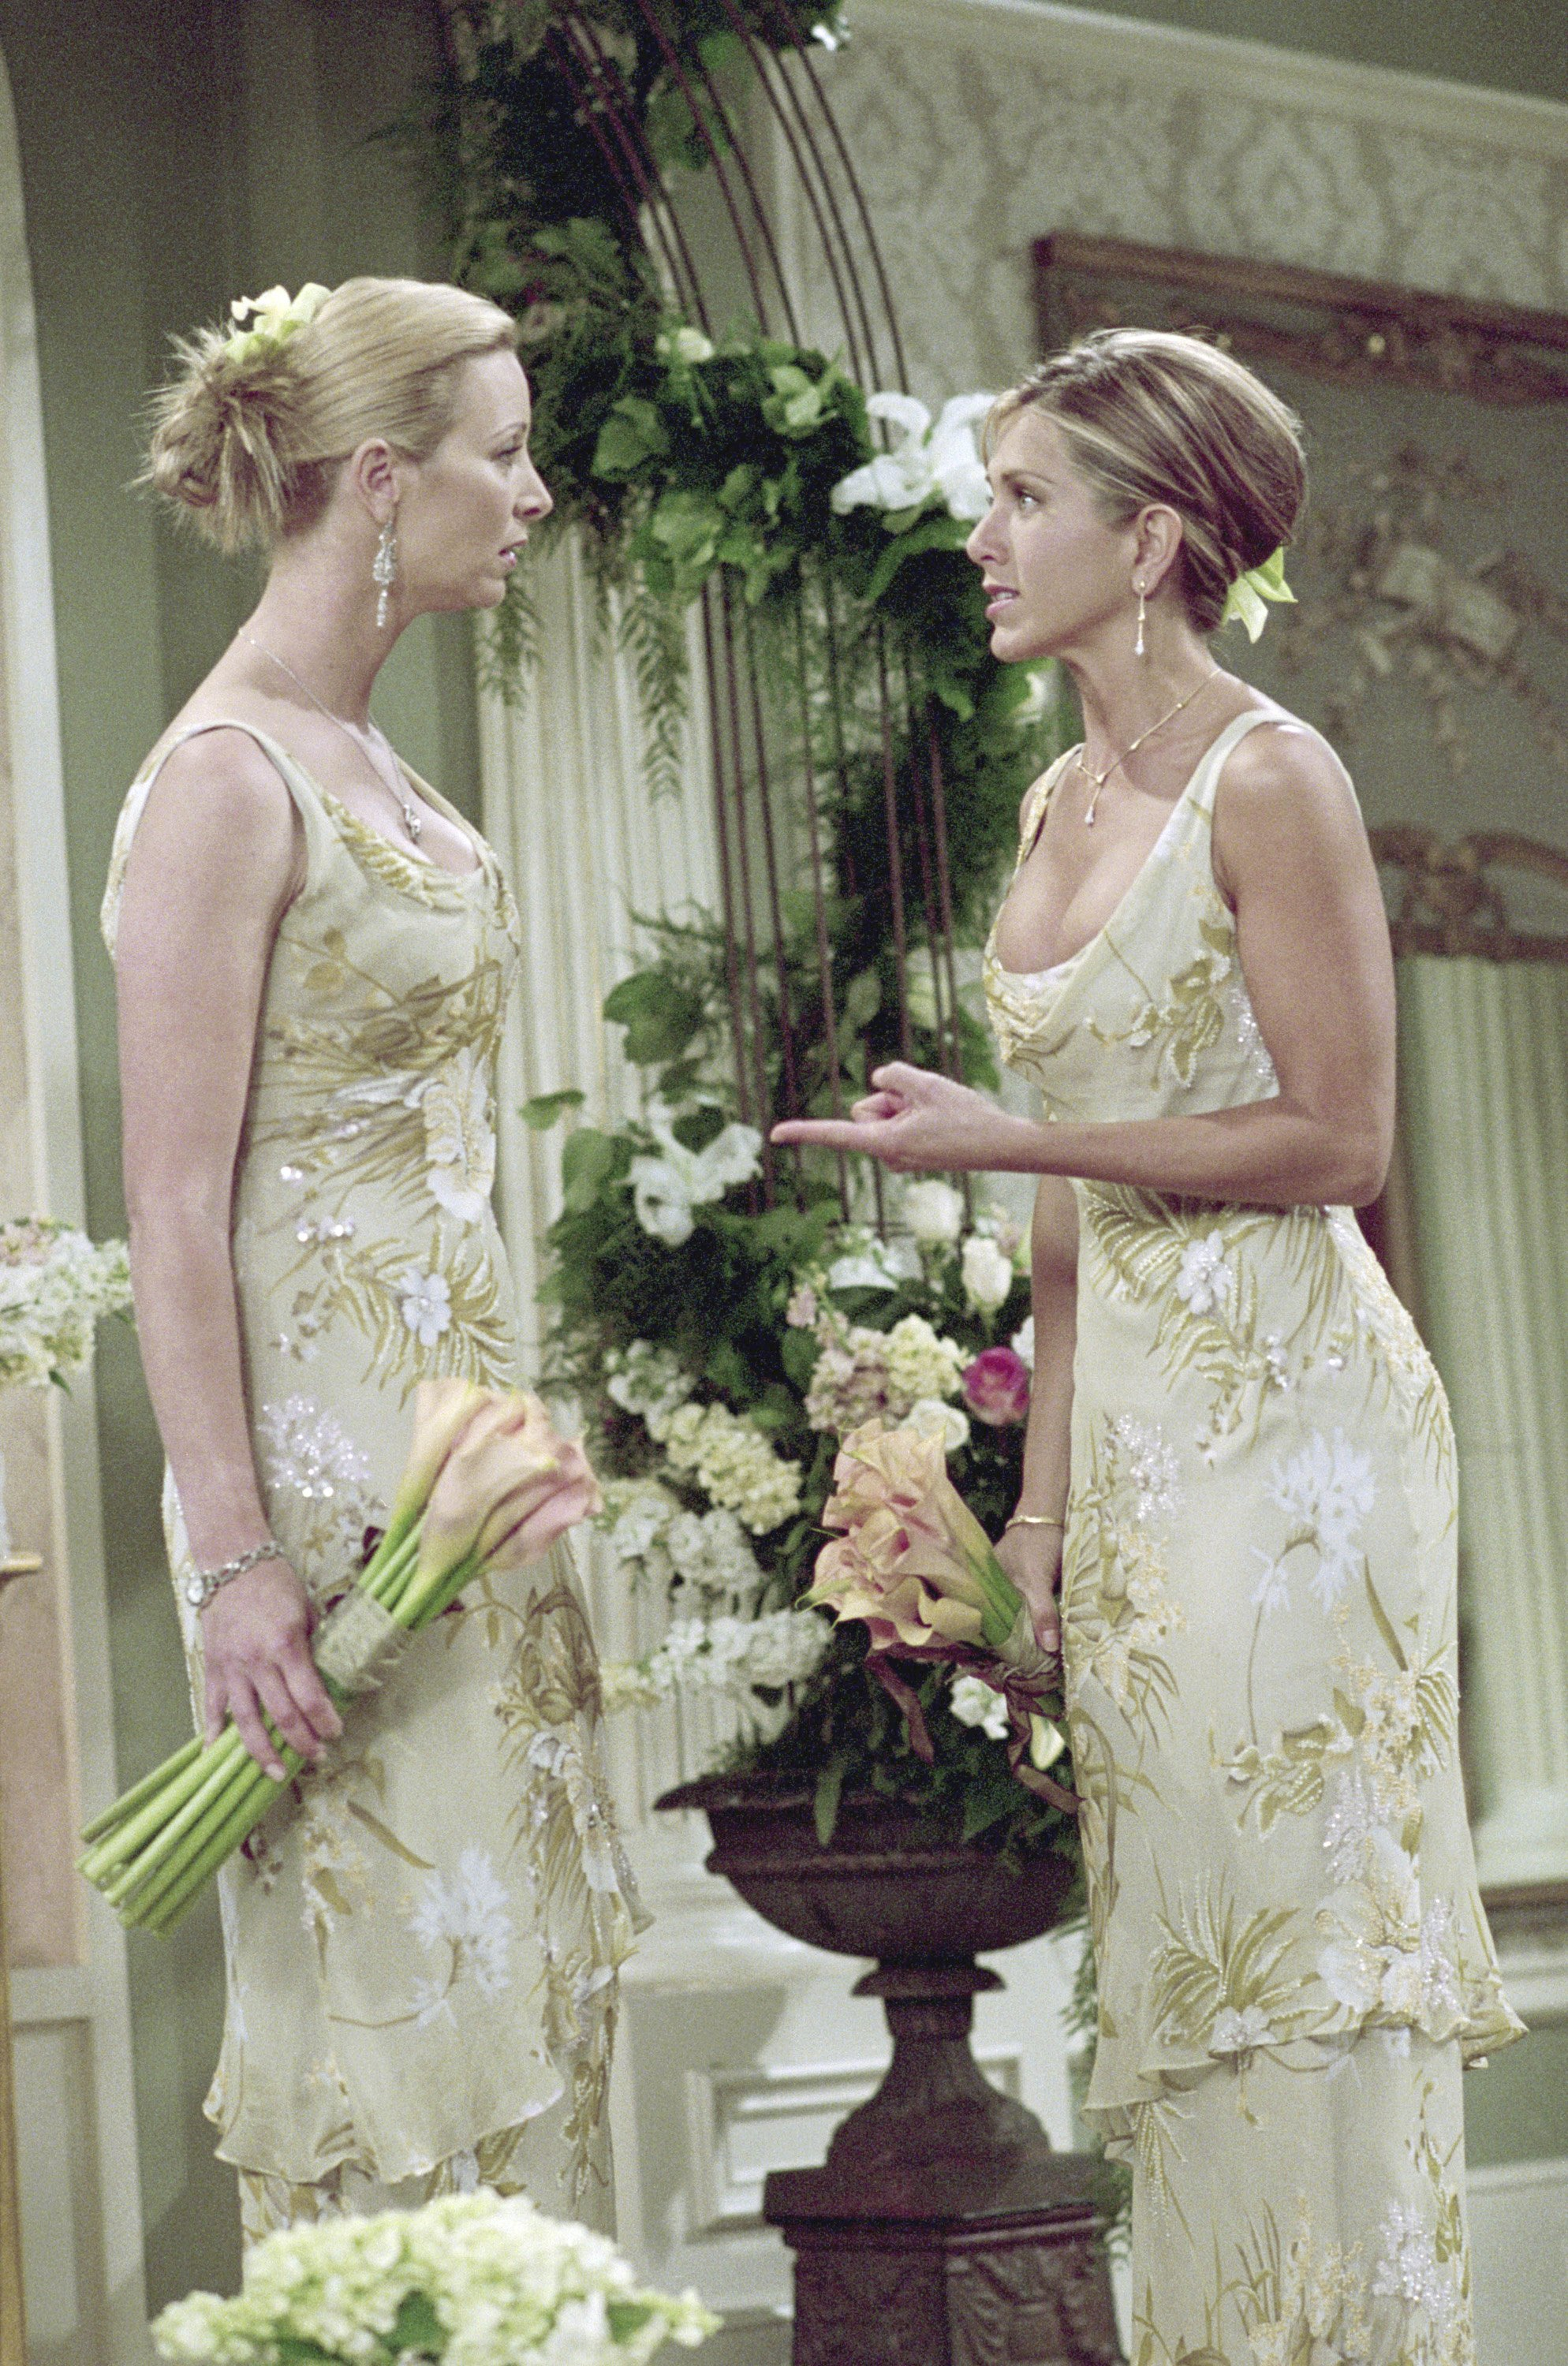 Lisa Kudrow As Phoebe Buffay And Jennifer Aniston Rachel Green In Season 7 Episode